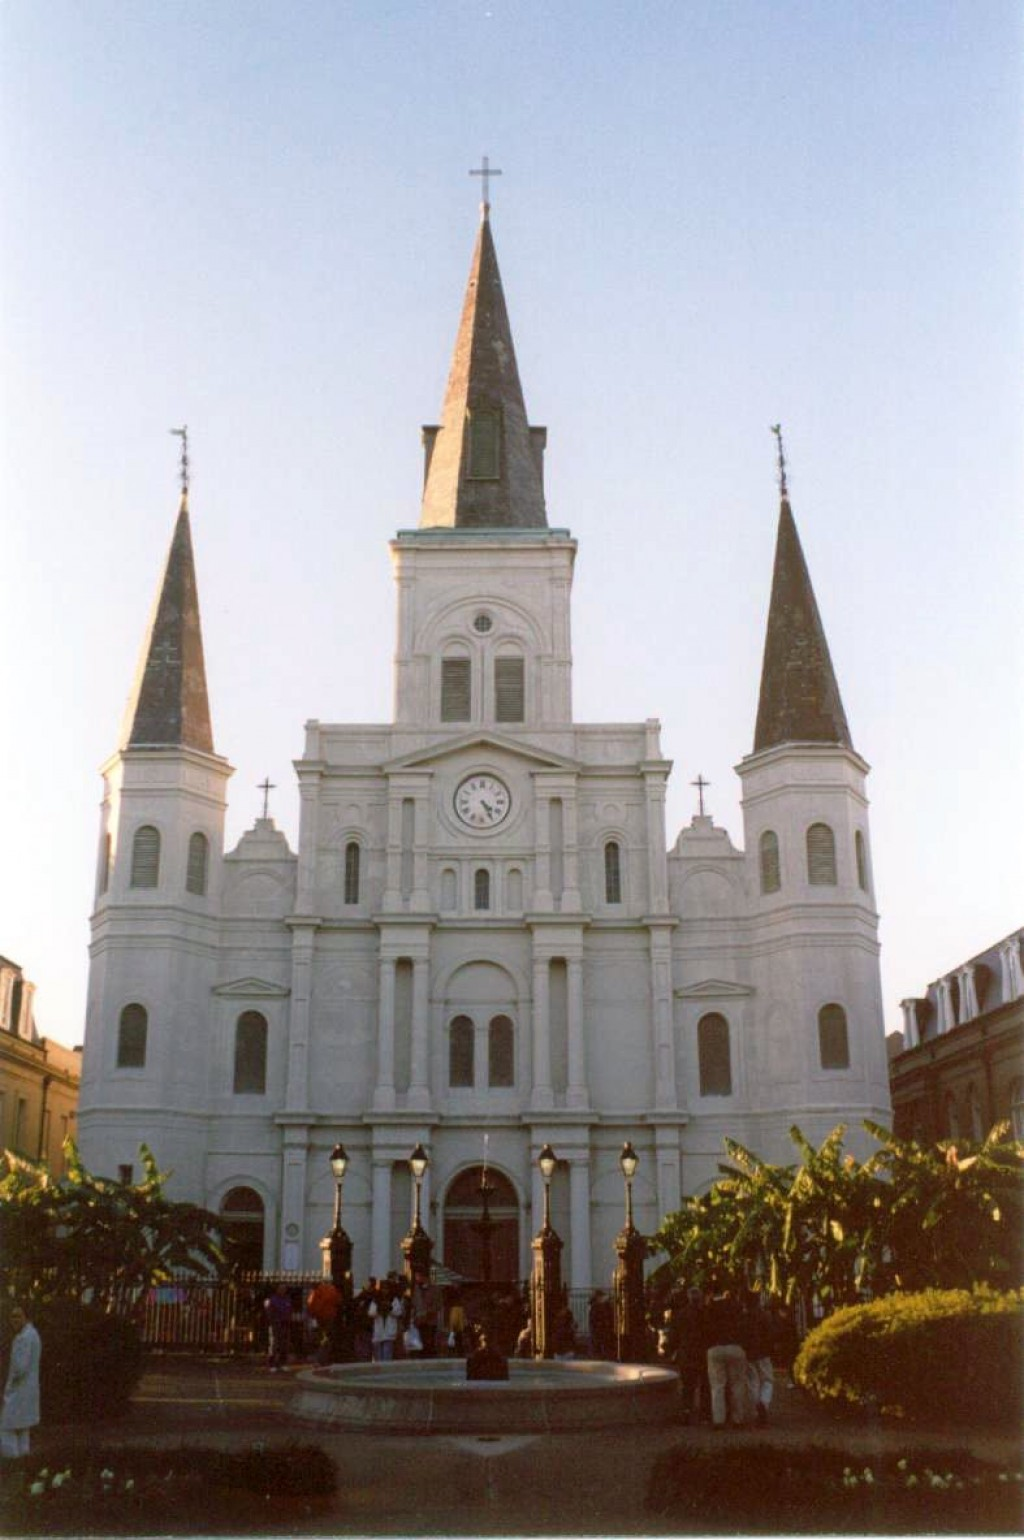 This is the St Louis cathedral off Jackson Square.  It is the oldest operational church in the US.